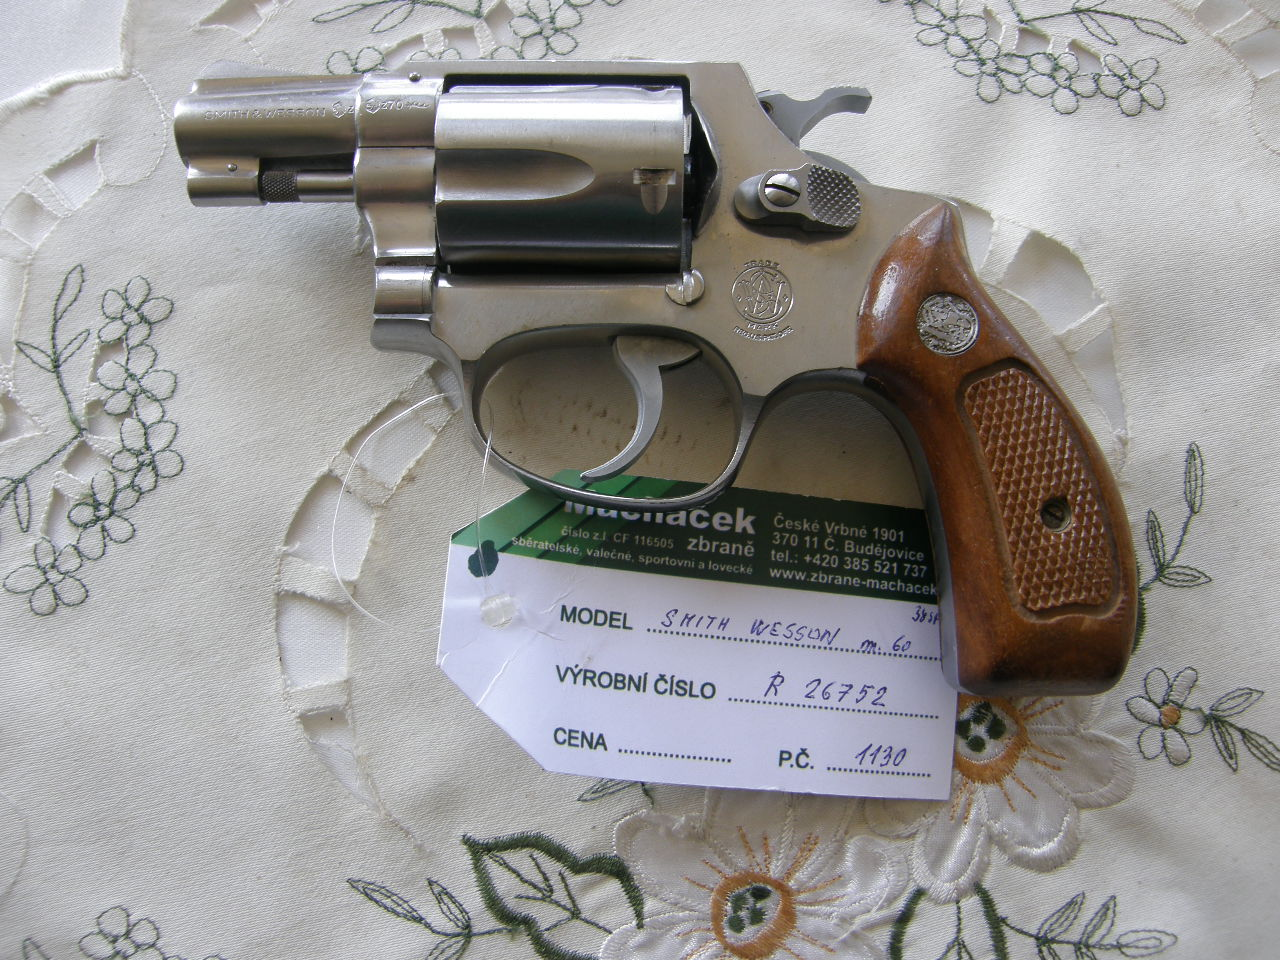 Revolver Smith Wesson Mod. 60 v.č.R 26752 r. 38 Sp.